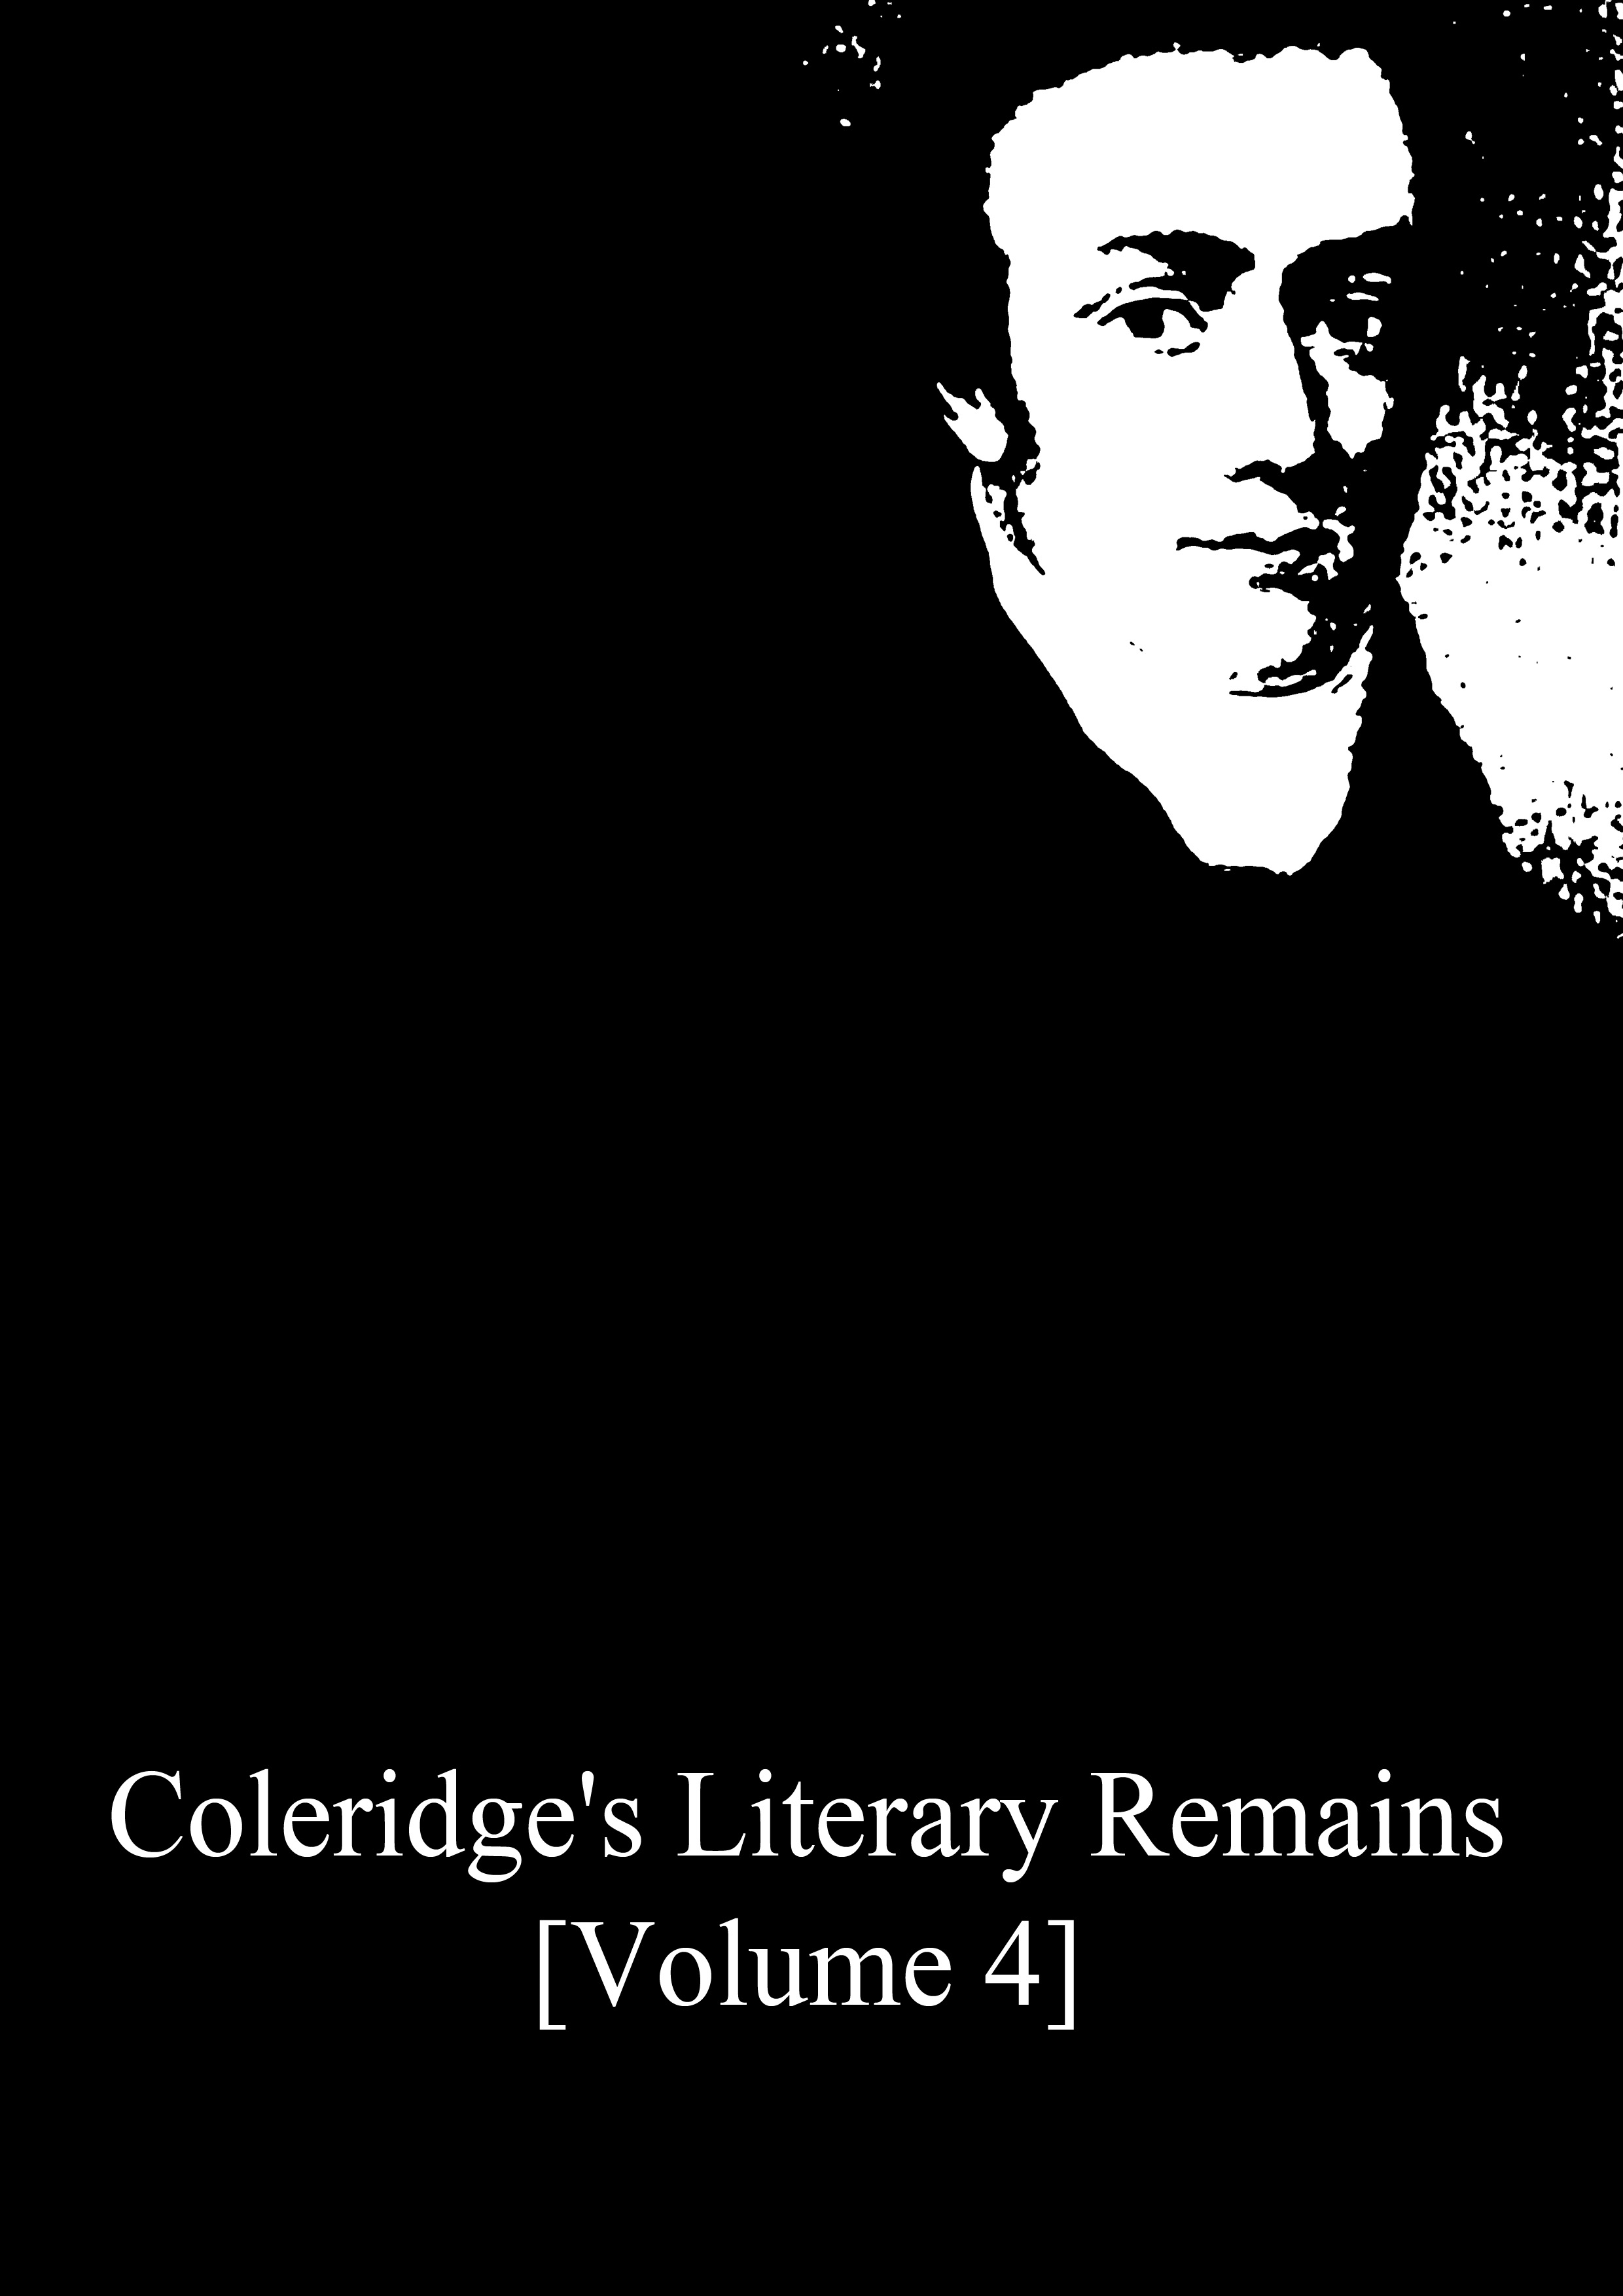 Coleridge's Literary Remains By: Samuel Taylor Coleridge